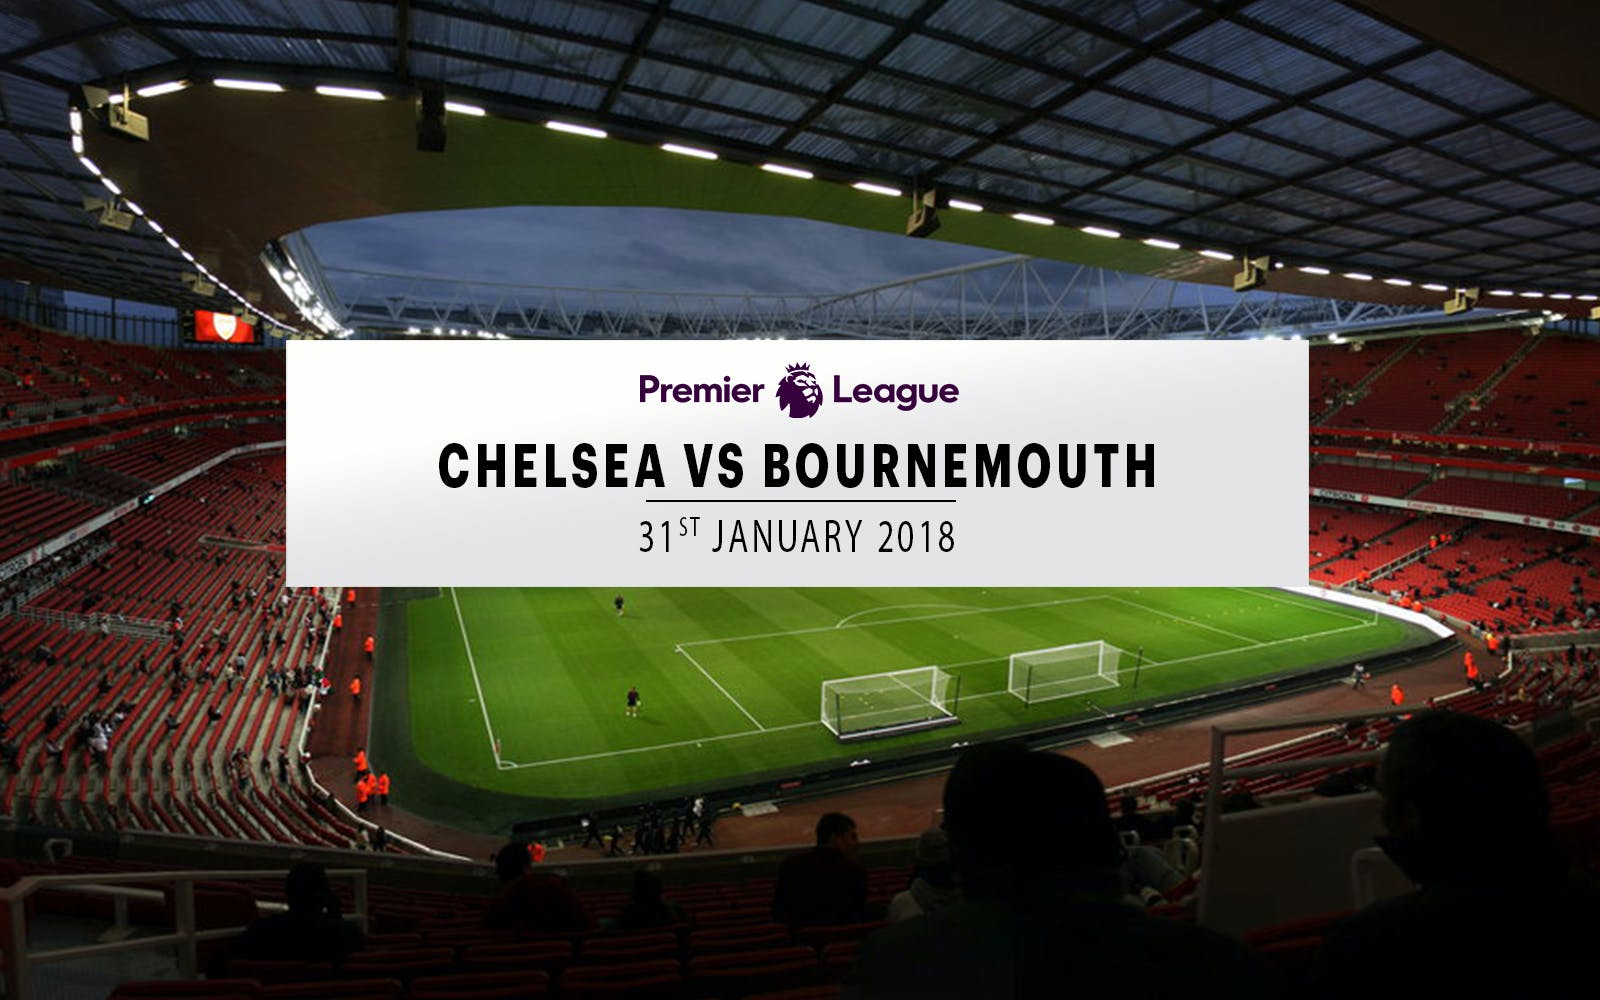 chelsea vs bournemouth - 31st january 2018-1